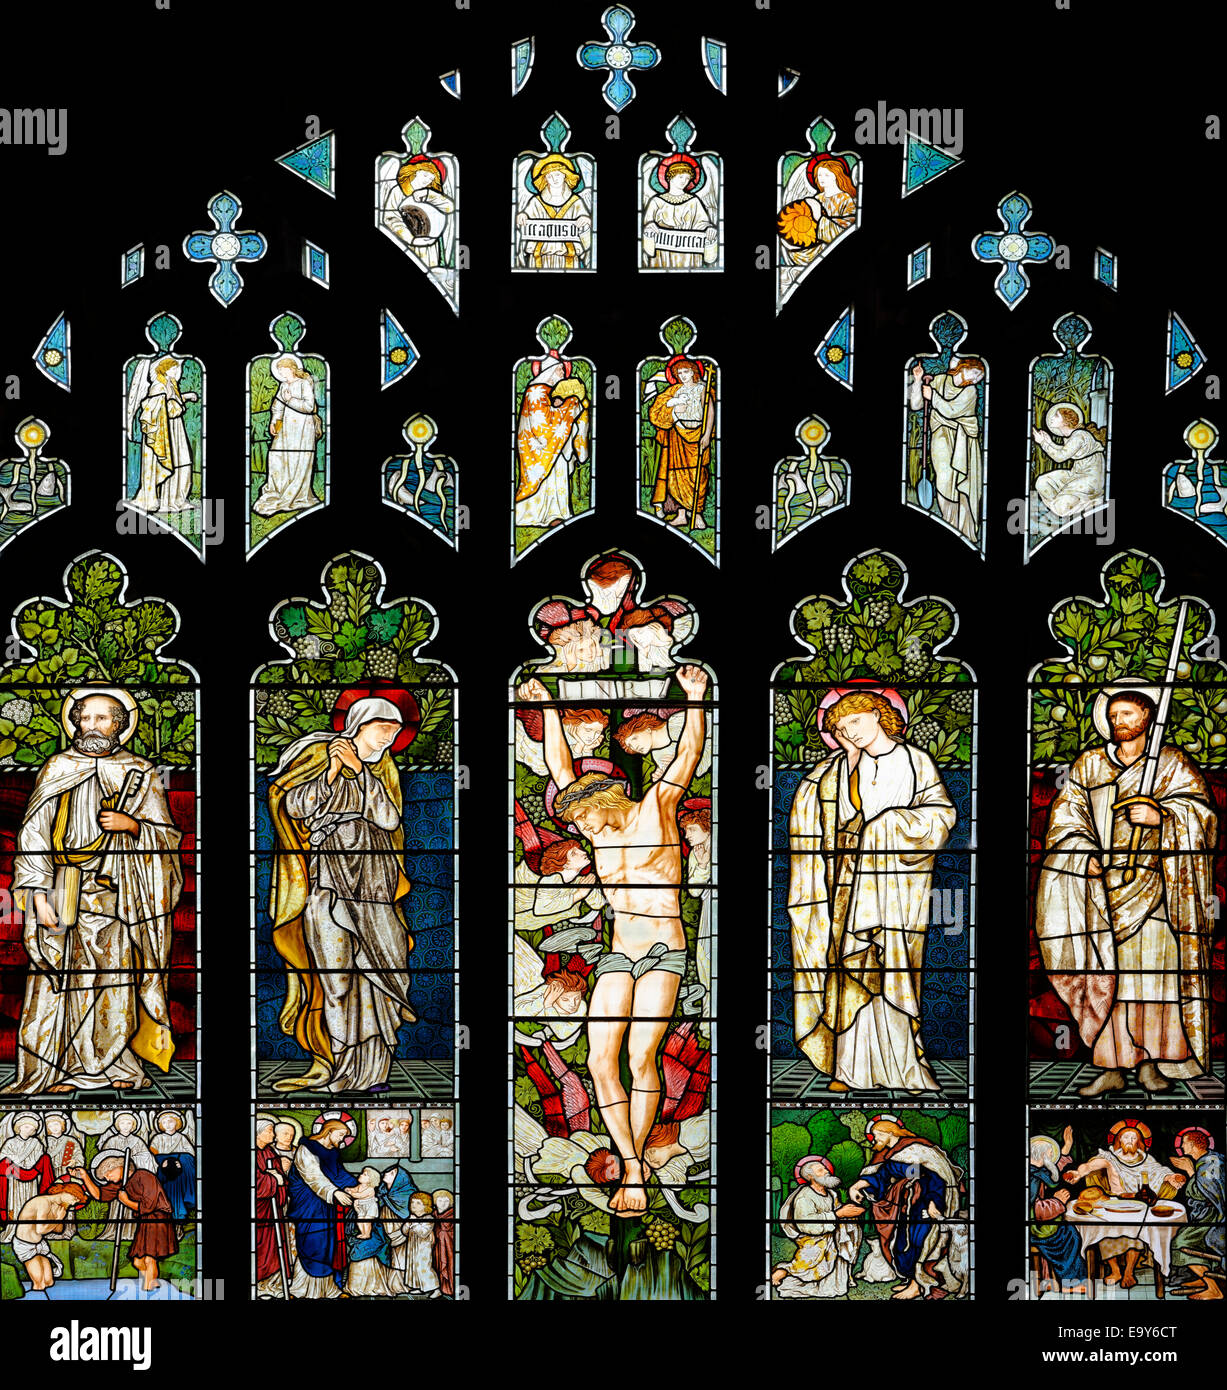 The Pre-Raphaelite East window of Jesus Church, Troutbeck, Lake District, Cumbria, England - Stock Image